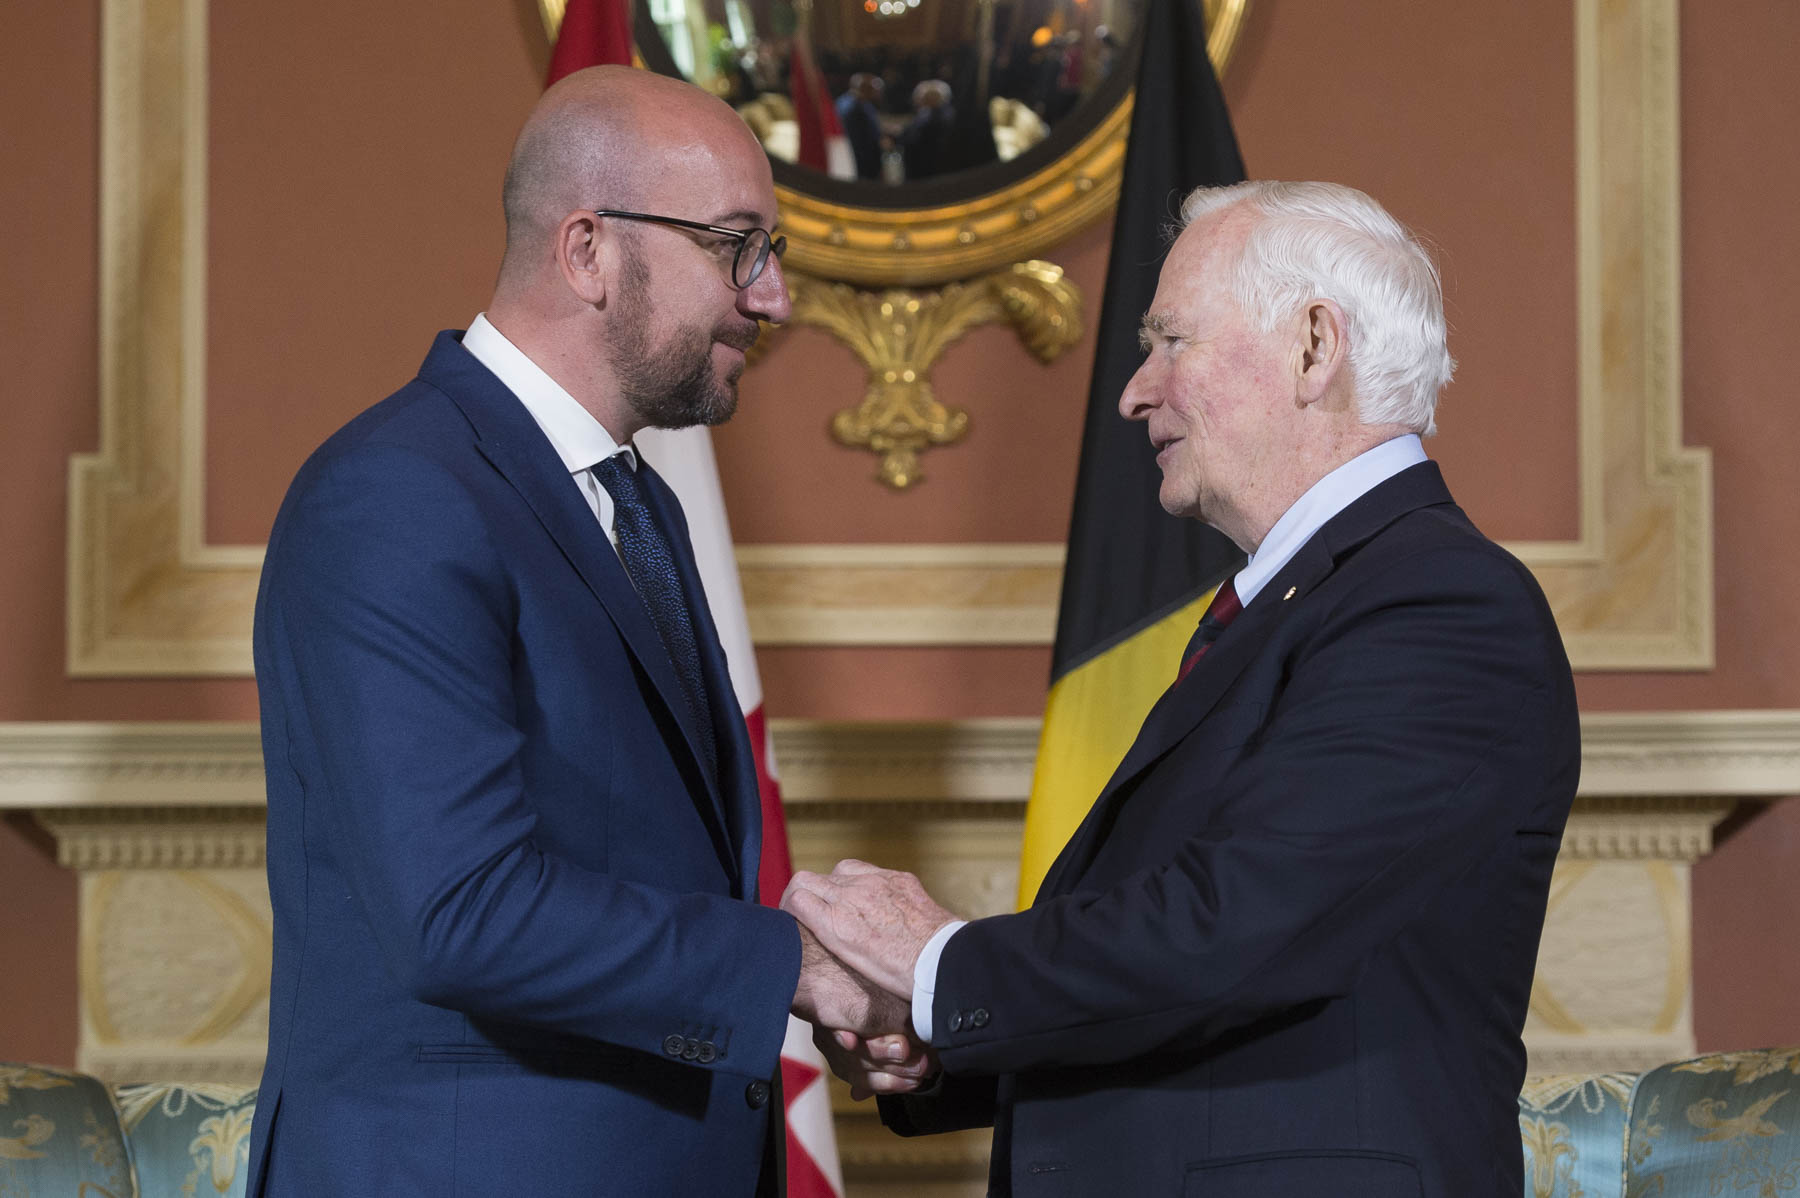 His Excellency the Right Honourable David Johnston, Governor General of Canada, met with His Excellency Charles Michel, Prime Minister of the Kingdom of Belgium, at Rideau Hall.